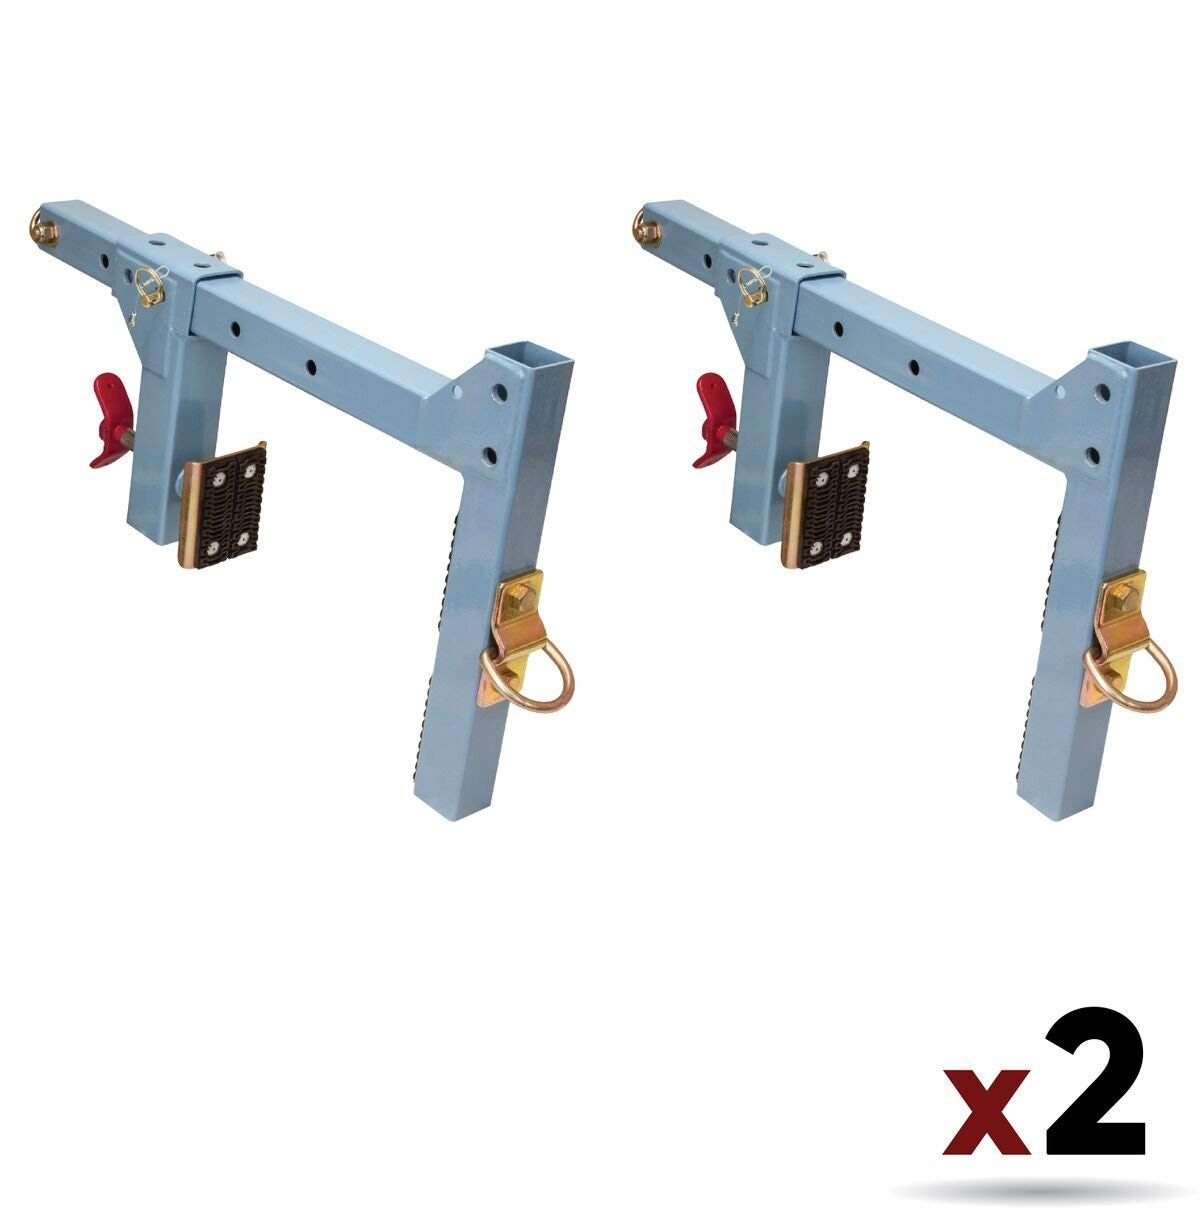 FallTech 7460A Multi-Purpose Parapet Anchor for Temporary Fall Arrest Anchorage fits Parapet Walls 1/2 to 15'' Thick, No Fasteners Required, Blue (2 Pack)